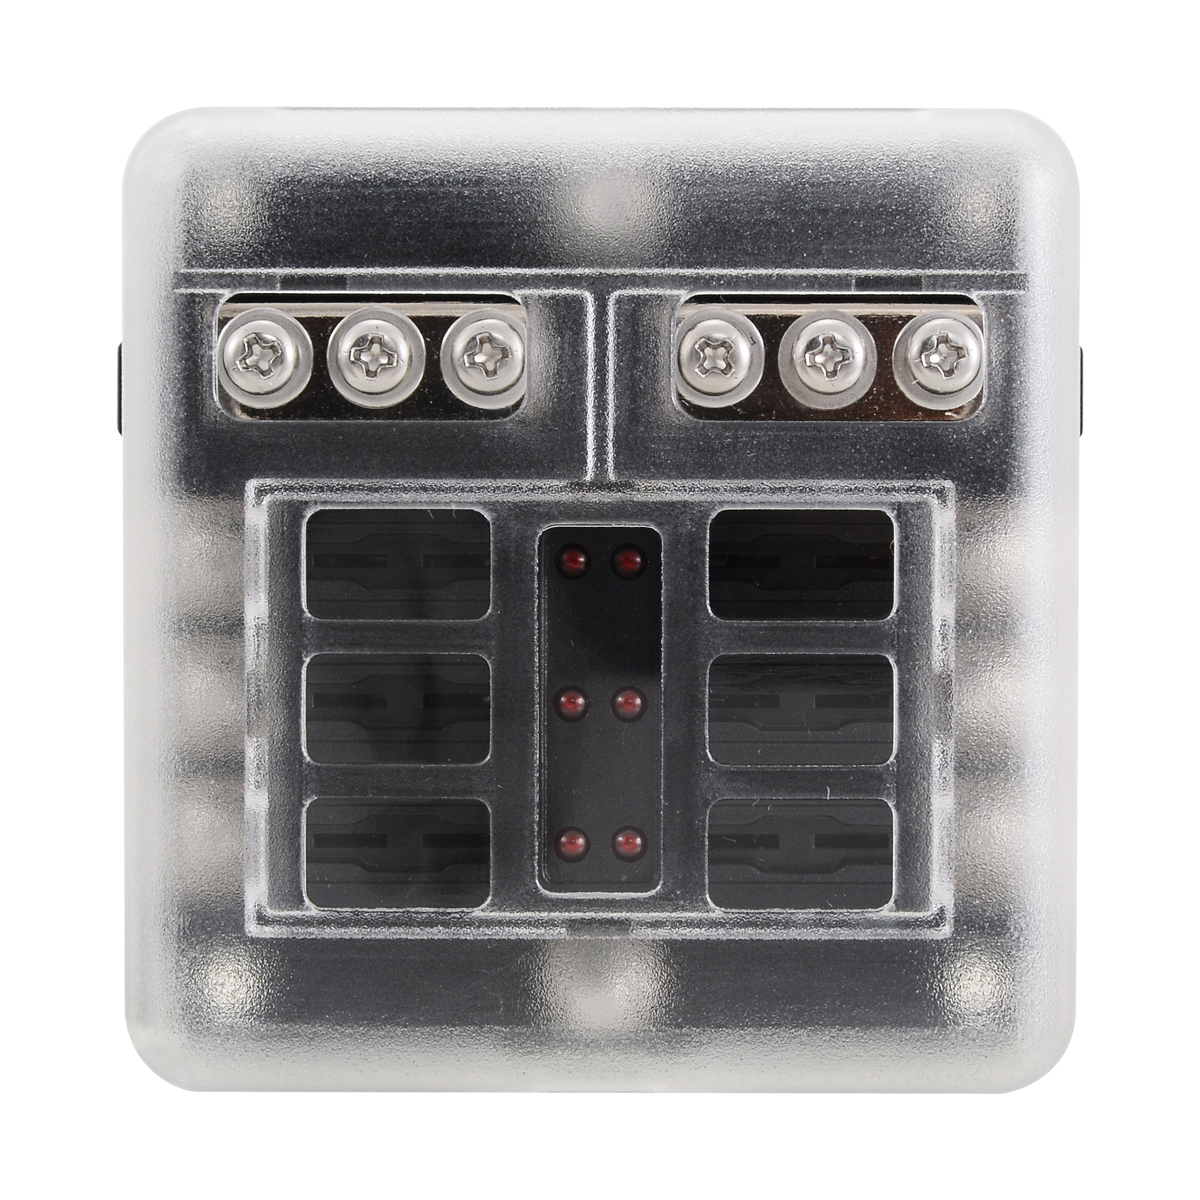 12V 24V Plastic Cover Fuse Box Holder 6 Way Blade Fuse Block Case With LED Indicator Display for Car Truck Marine Bus RV Van in Fuses from Home Improvement